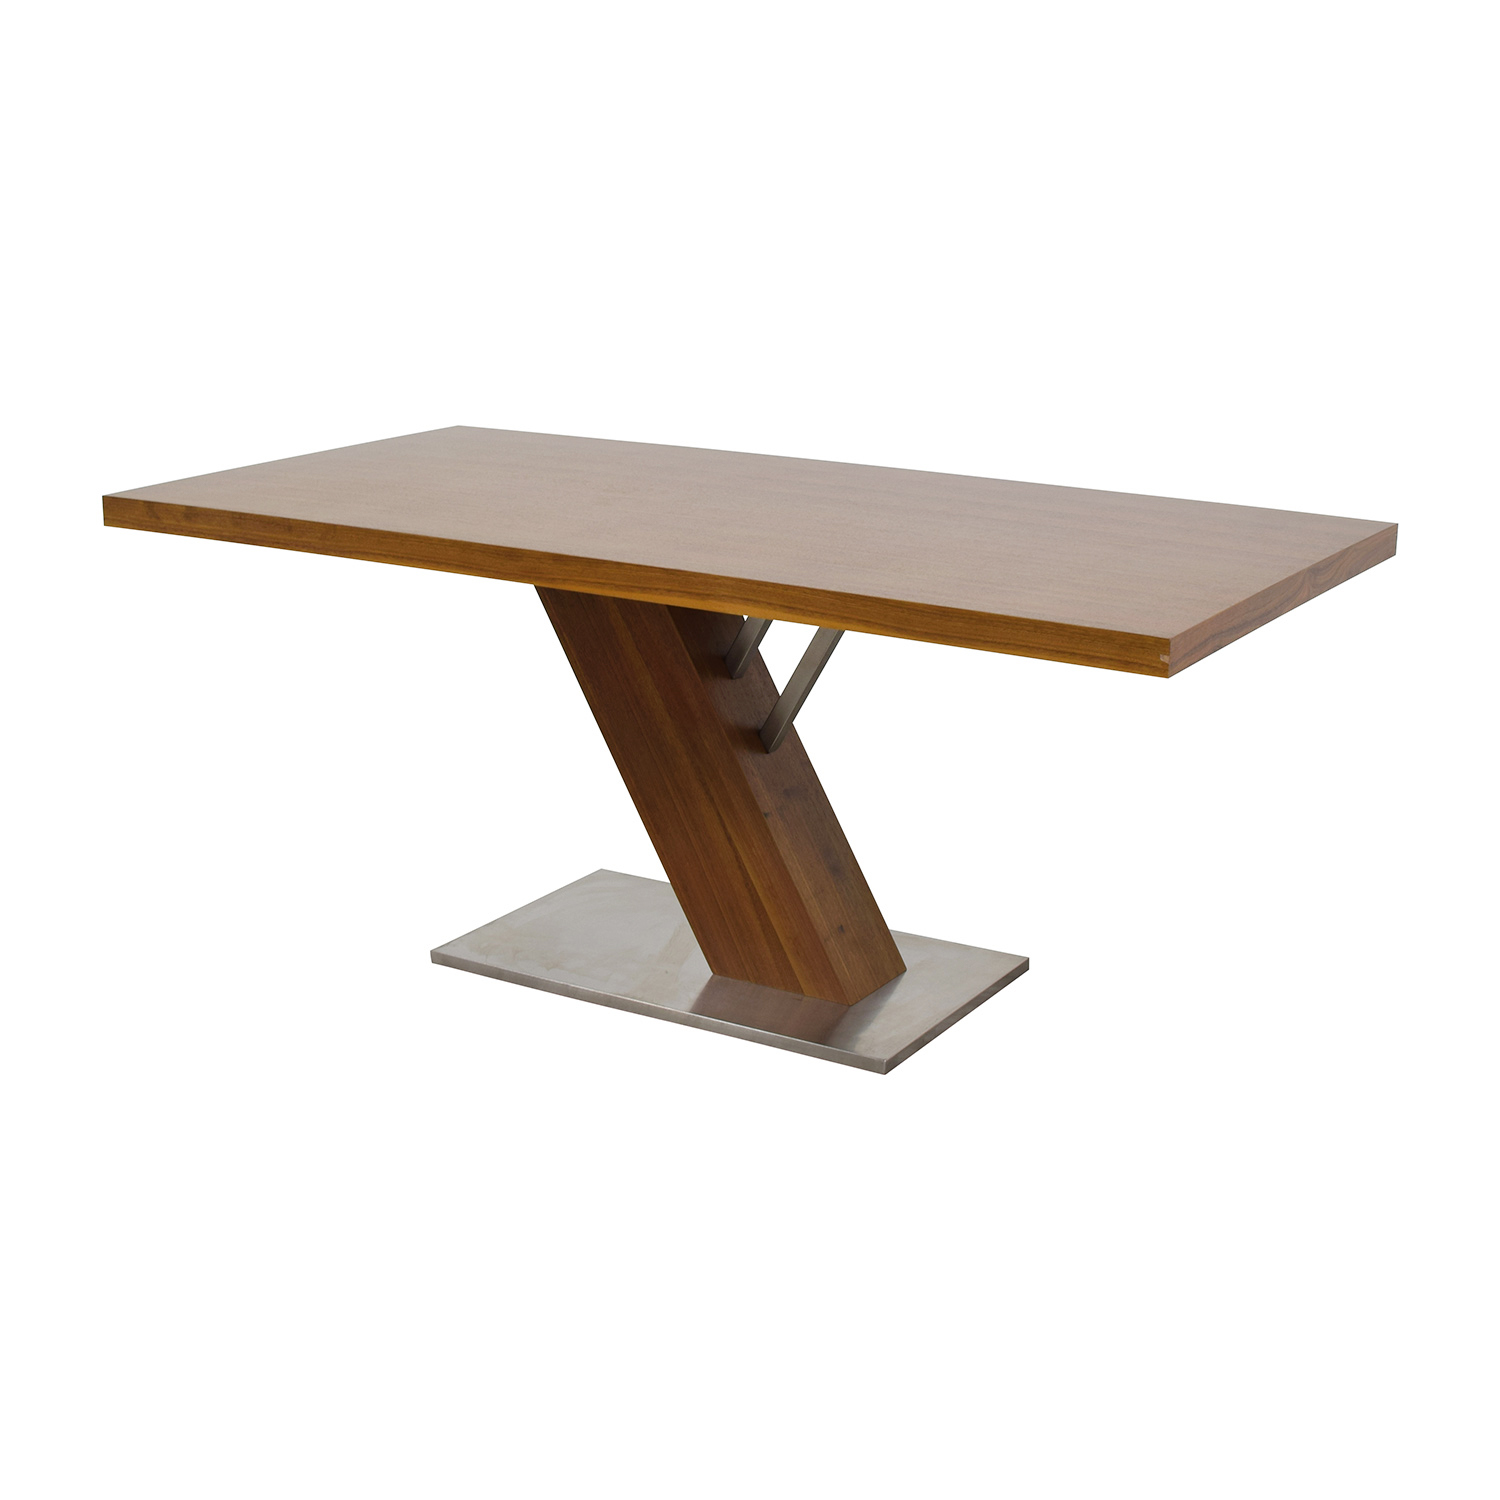 61 off inmod inmod fusion dining table tables for In mod furniture